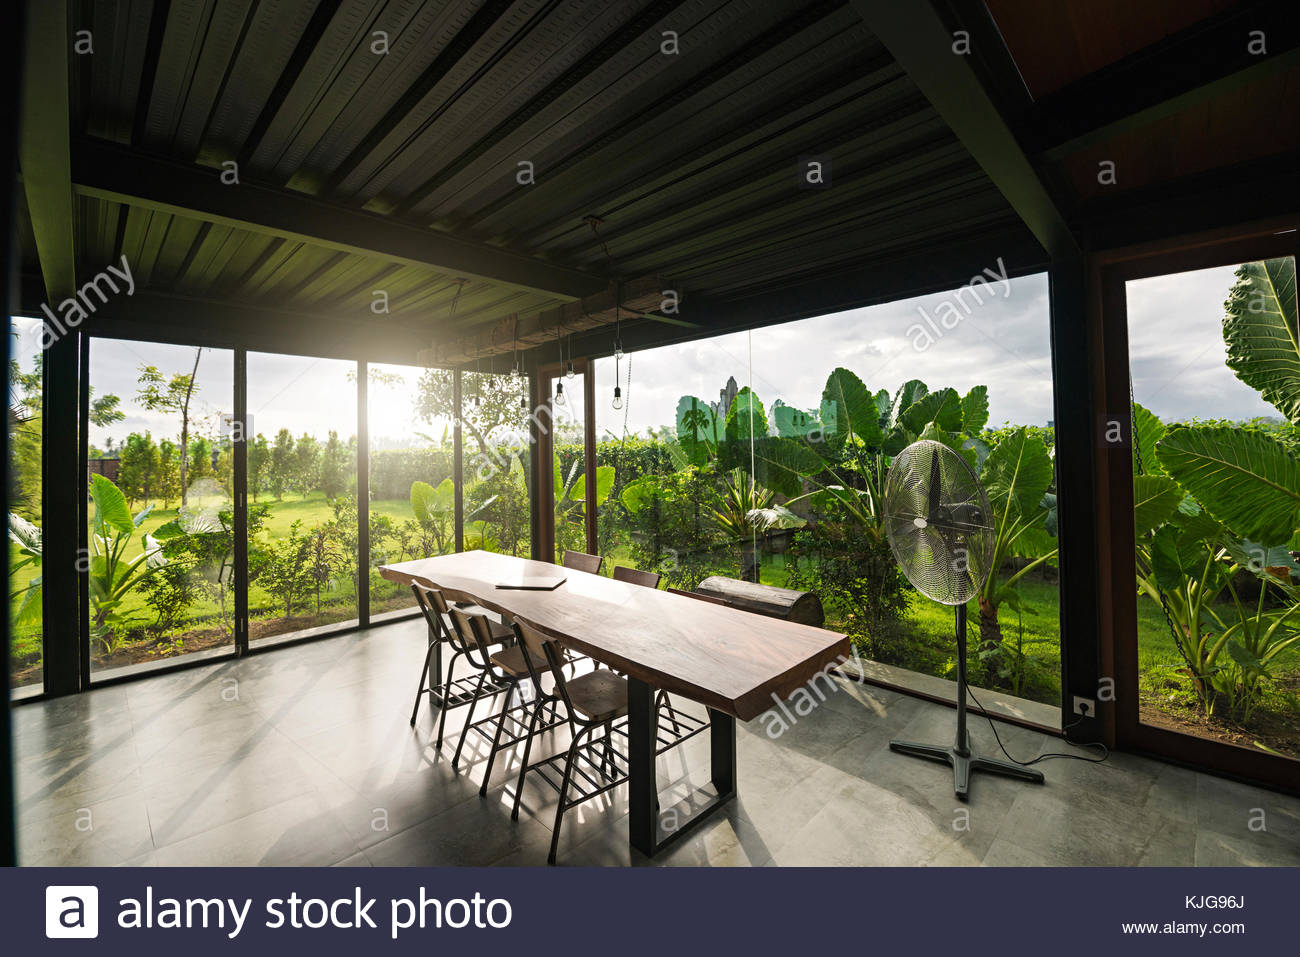 Awesome Modern Wooden Table In Contemporary Design House With Glass Facade  Surrounded By Lush Tropical Garden